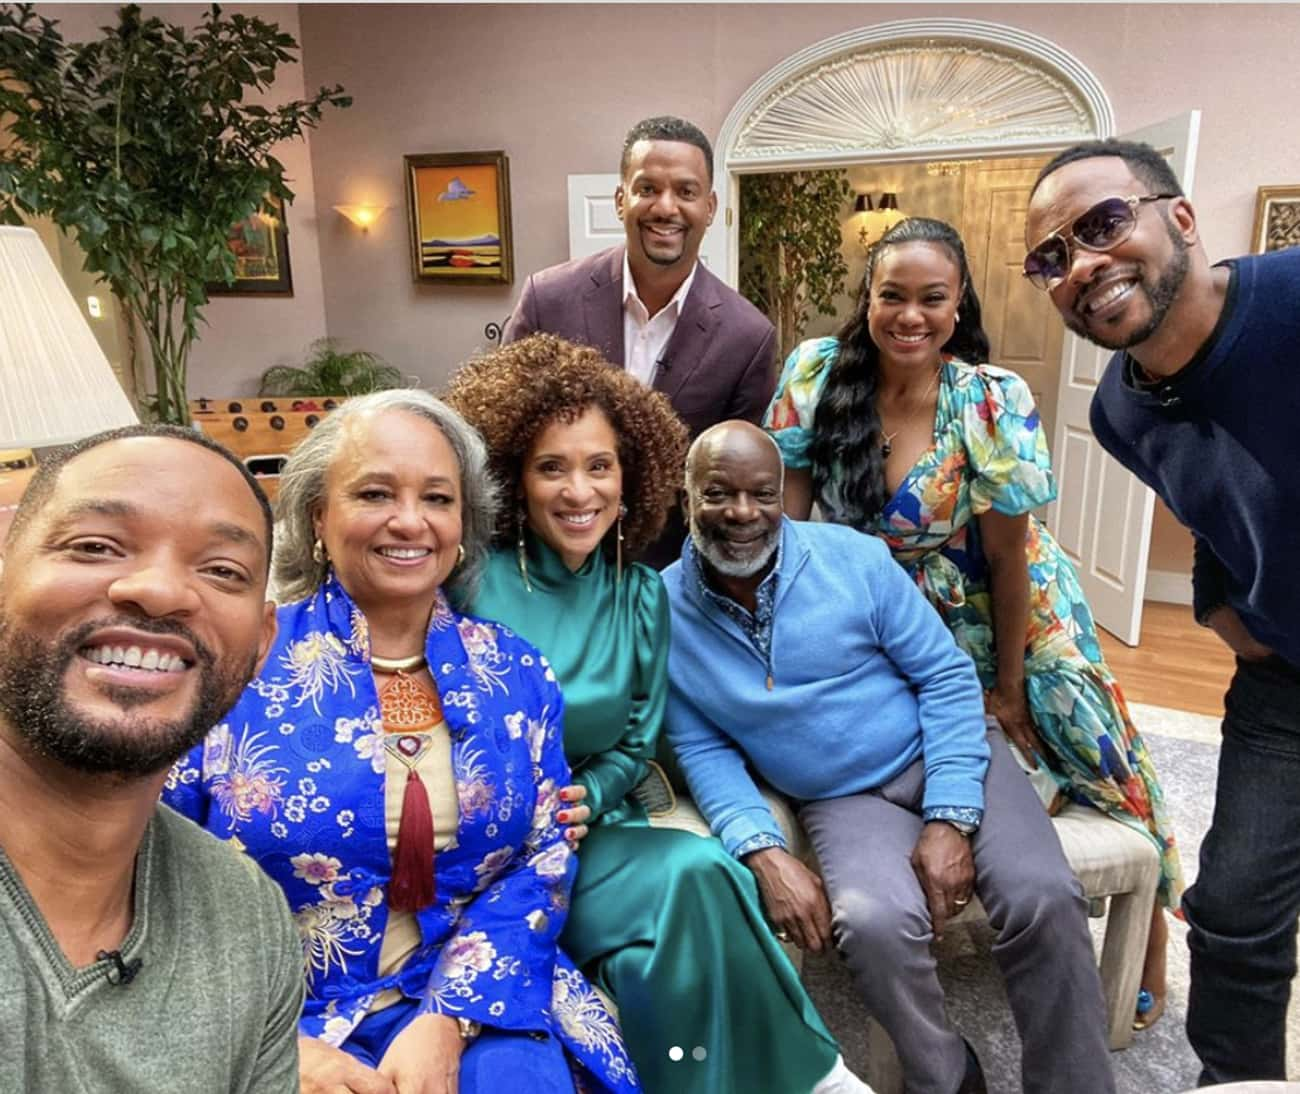 The Fresh Prince of Bel-Air - NOW